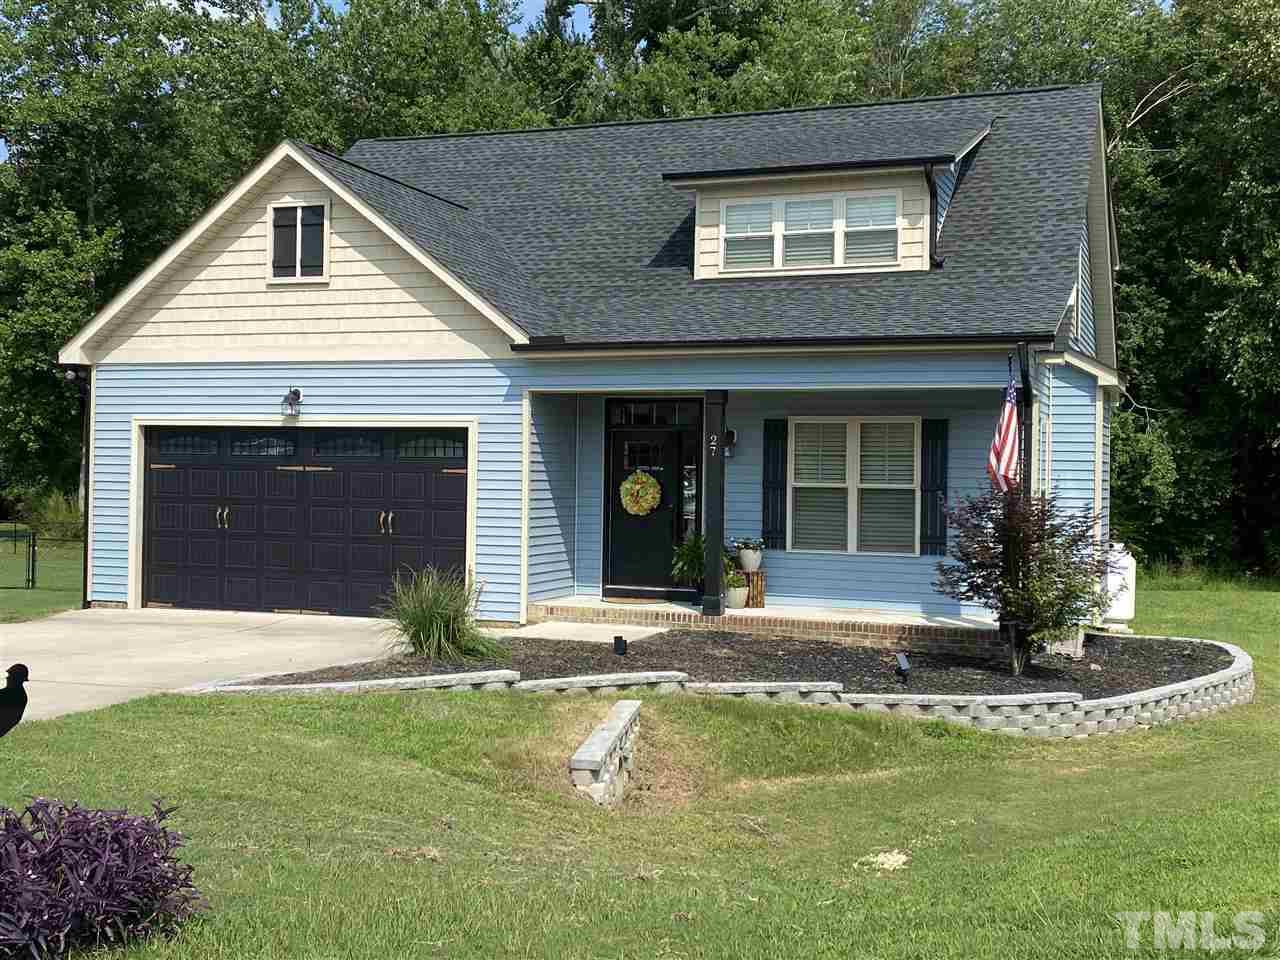 Craftsman Style Home packs alot of space. Home is larger than it looks. Great relaxing porch